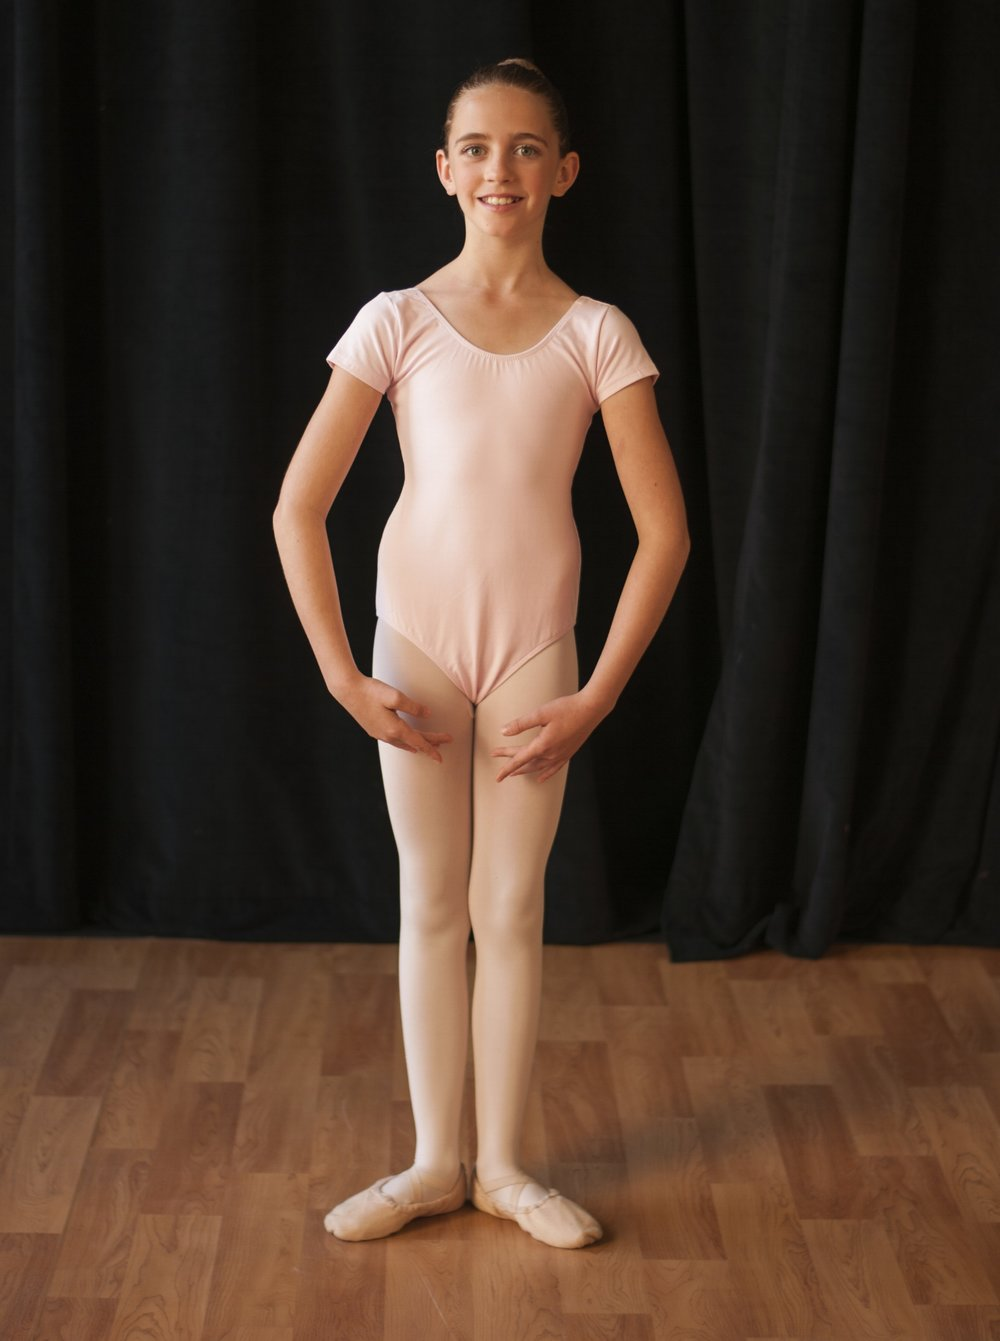 Leap 'N Learn 5 & Leap 'N Learn 6 - Pink short sleeve leotardPink footed or convertible dance tights (no specific brand required)Pink leather or canvas ballet shoesHair in a ballet bunSkirt, sweater and leg warmers are optional and at the discretion of the teacher